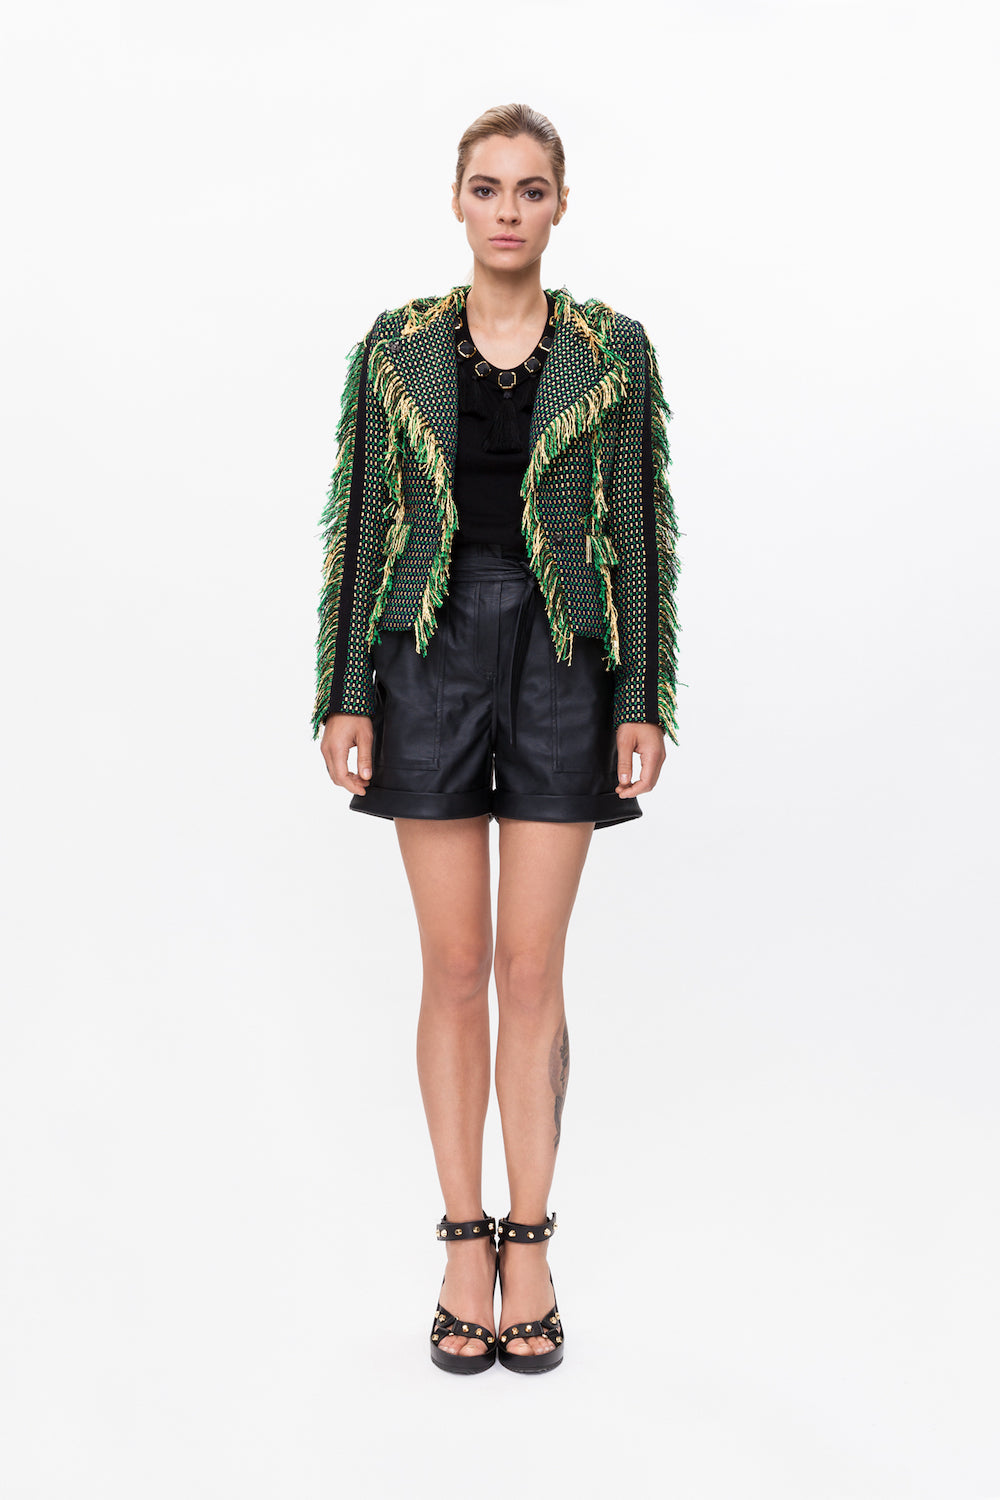 RITA mixed suit jacket